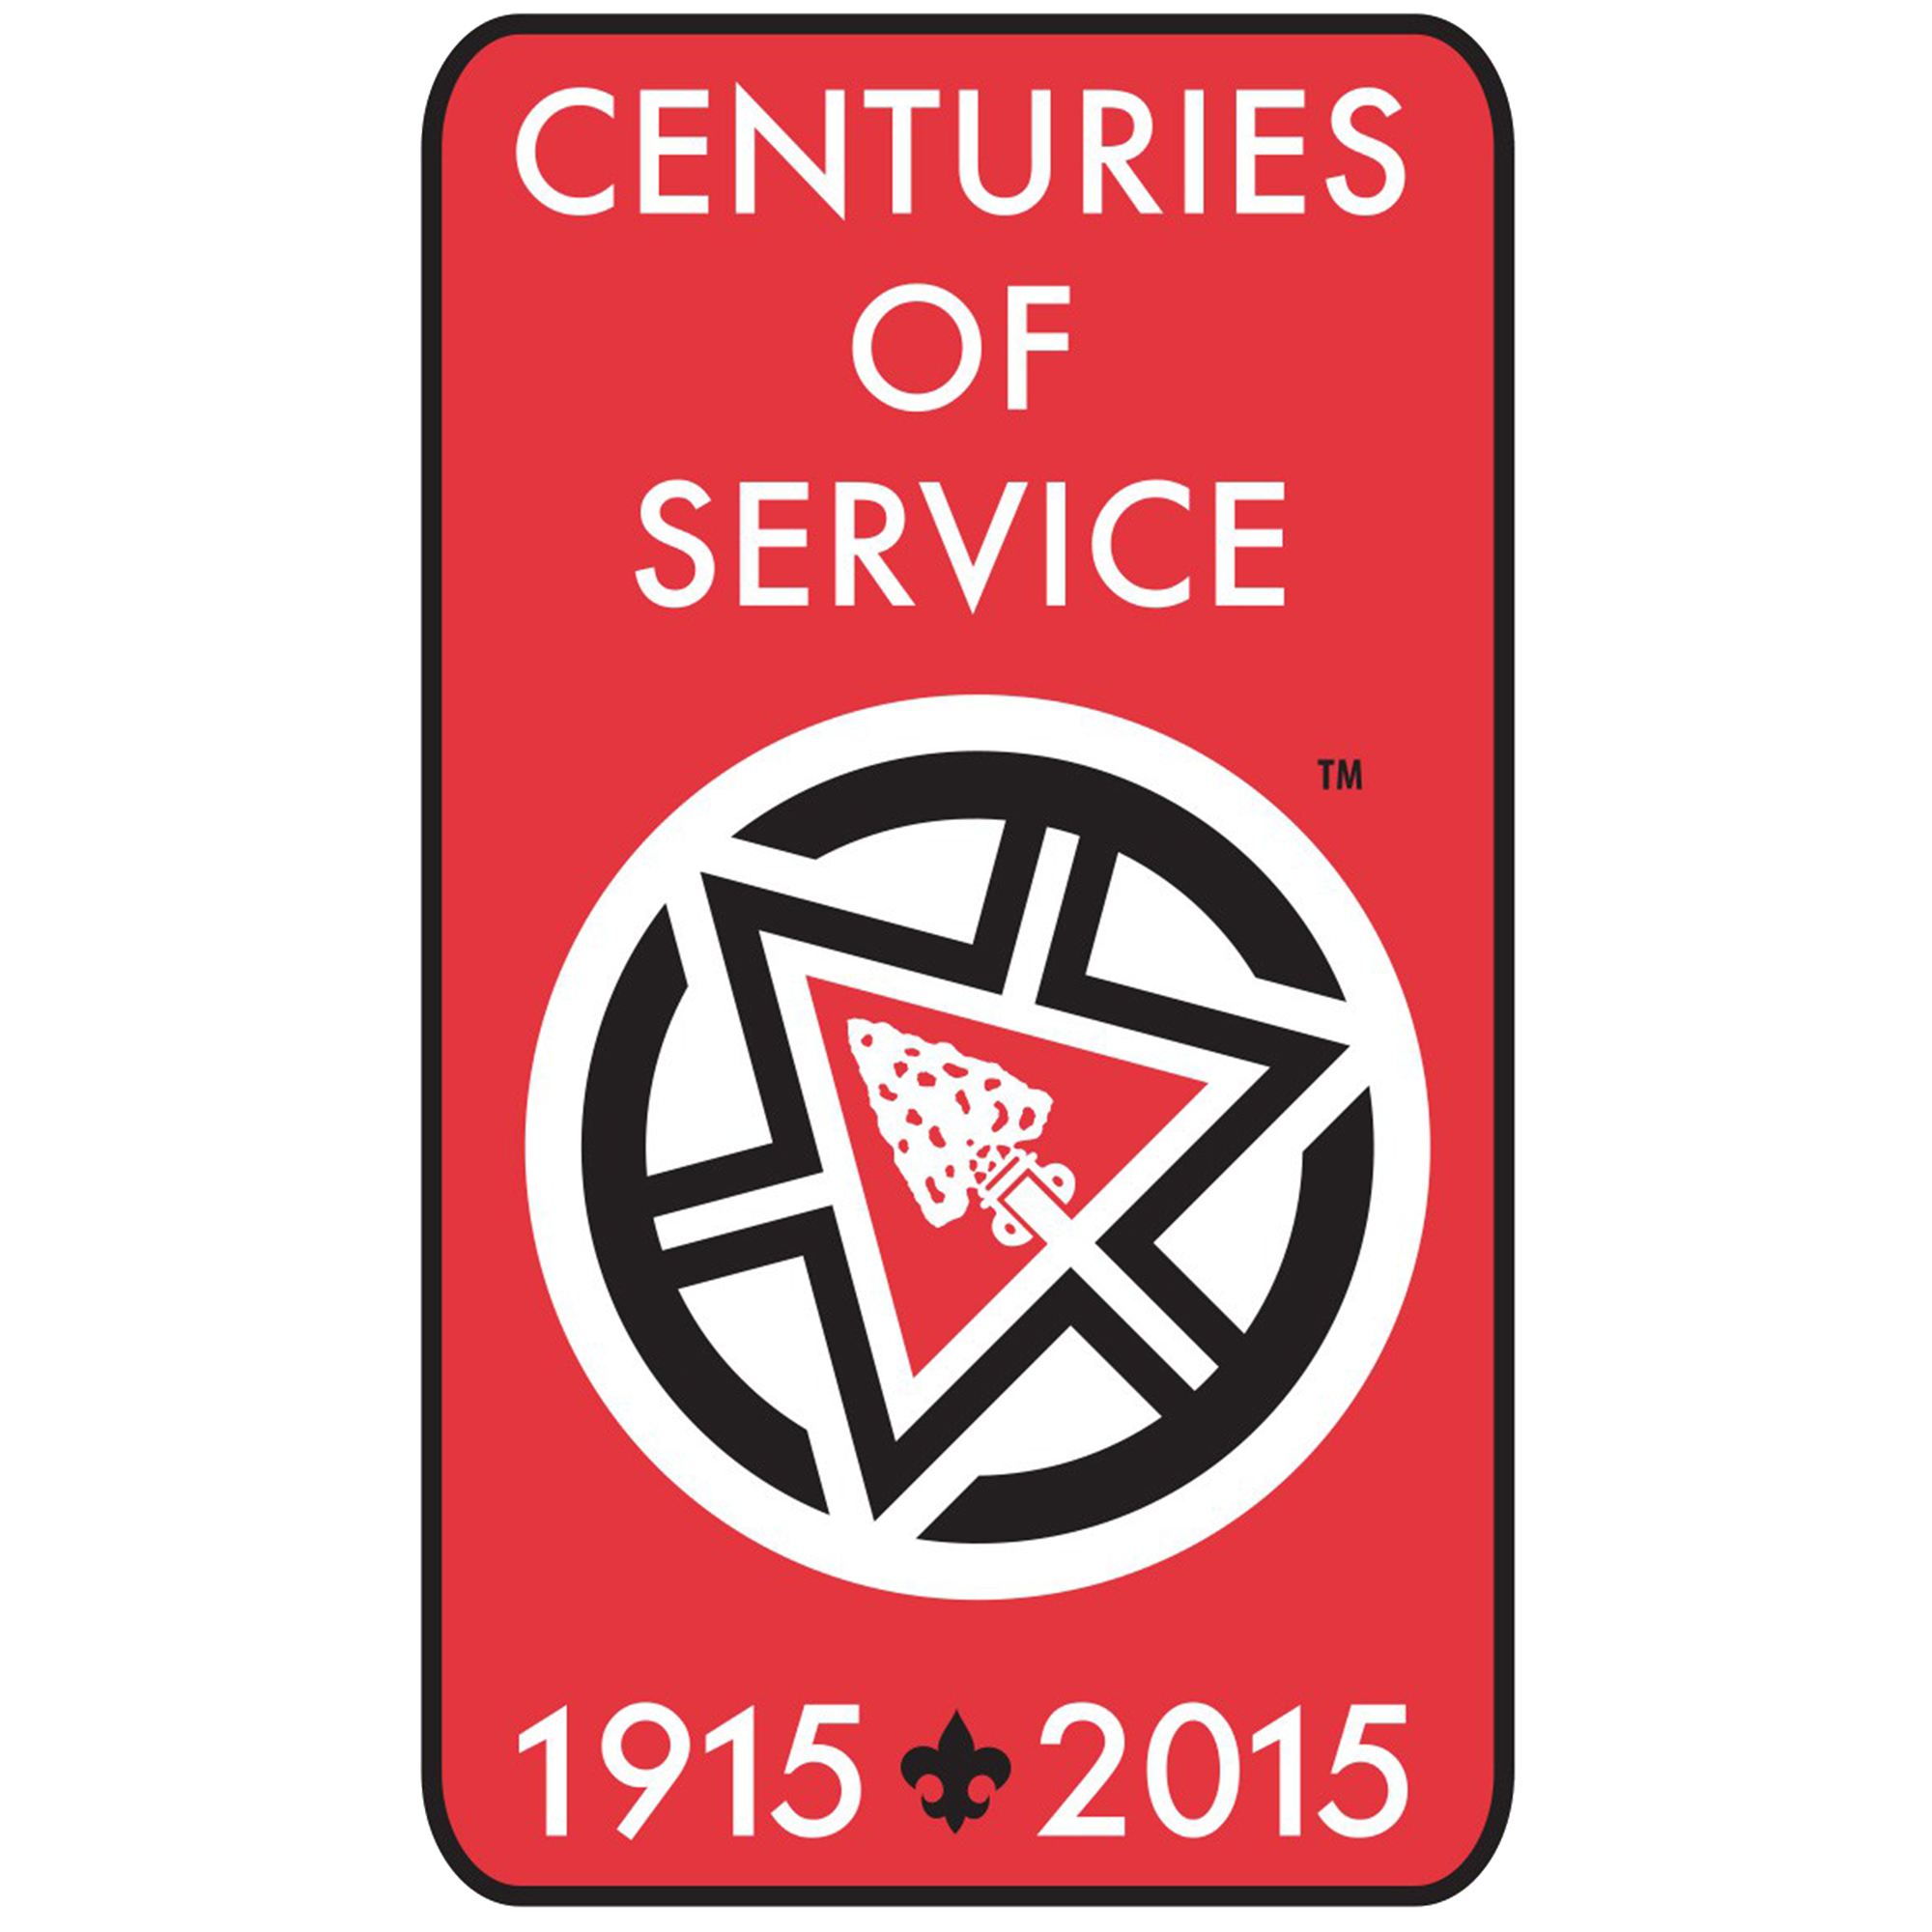 Centuries of Service Award